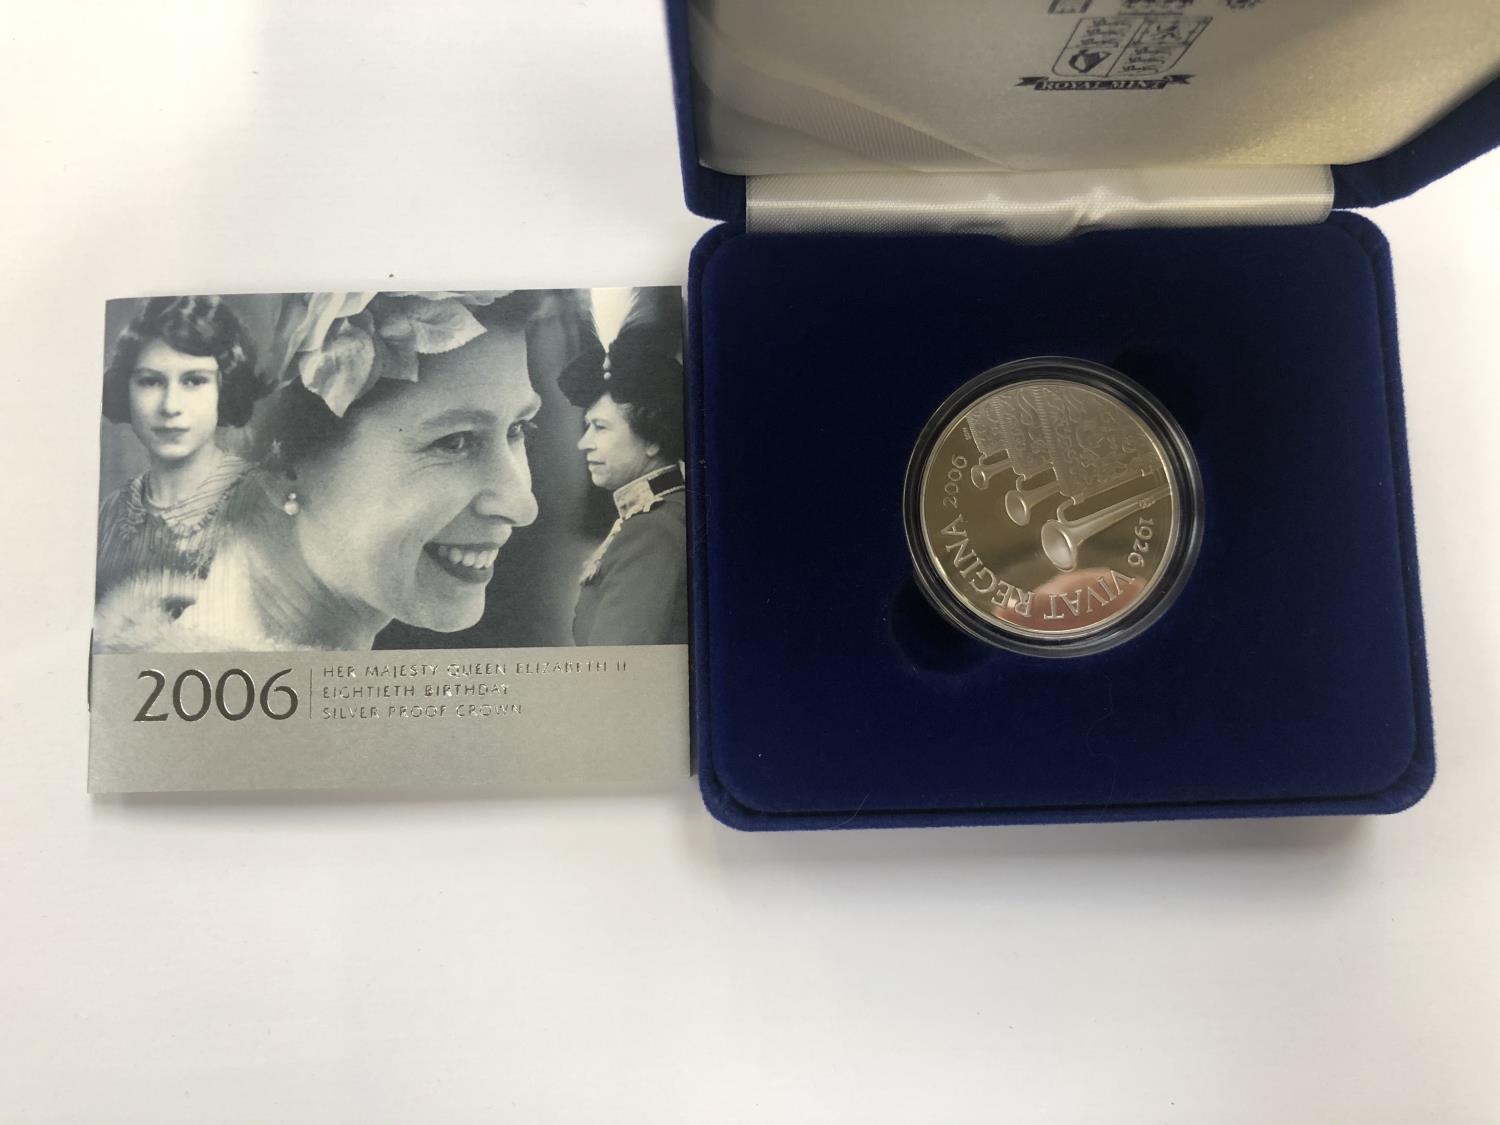 """Lot 534 - UK ROYAL MINT """"2006 EIGHTIETH BIRTHDAY SILVER PROOF CROWN"""", ENCAPSULATED AND BOXED WITH C.O.A"""